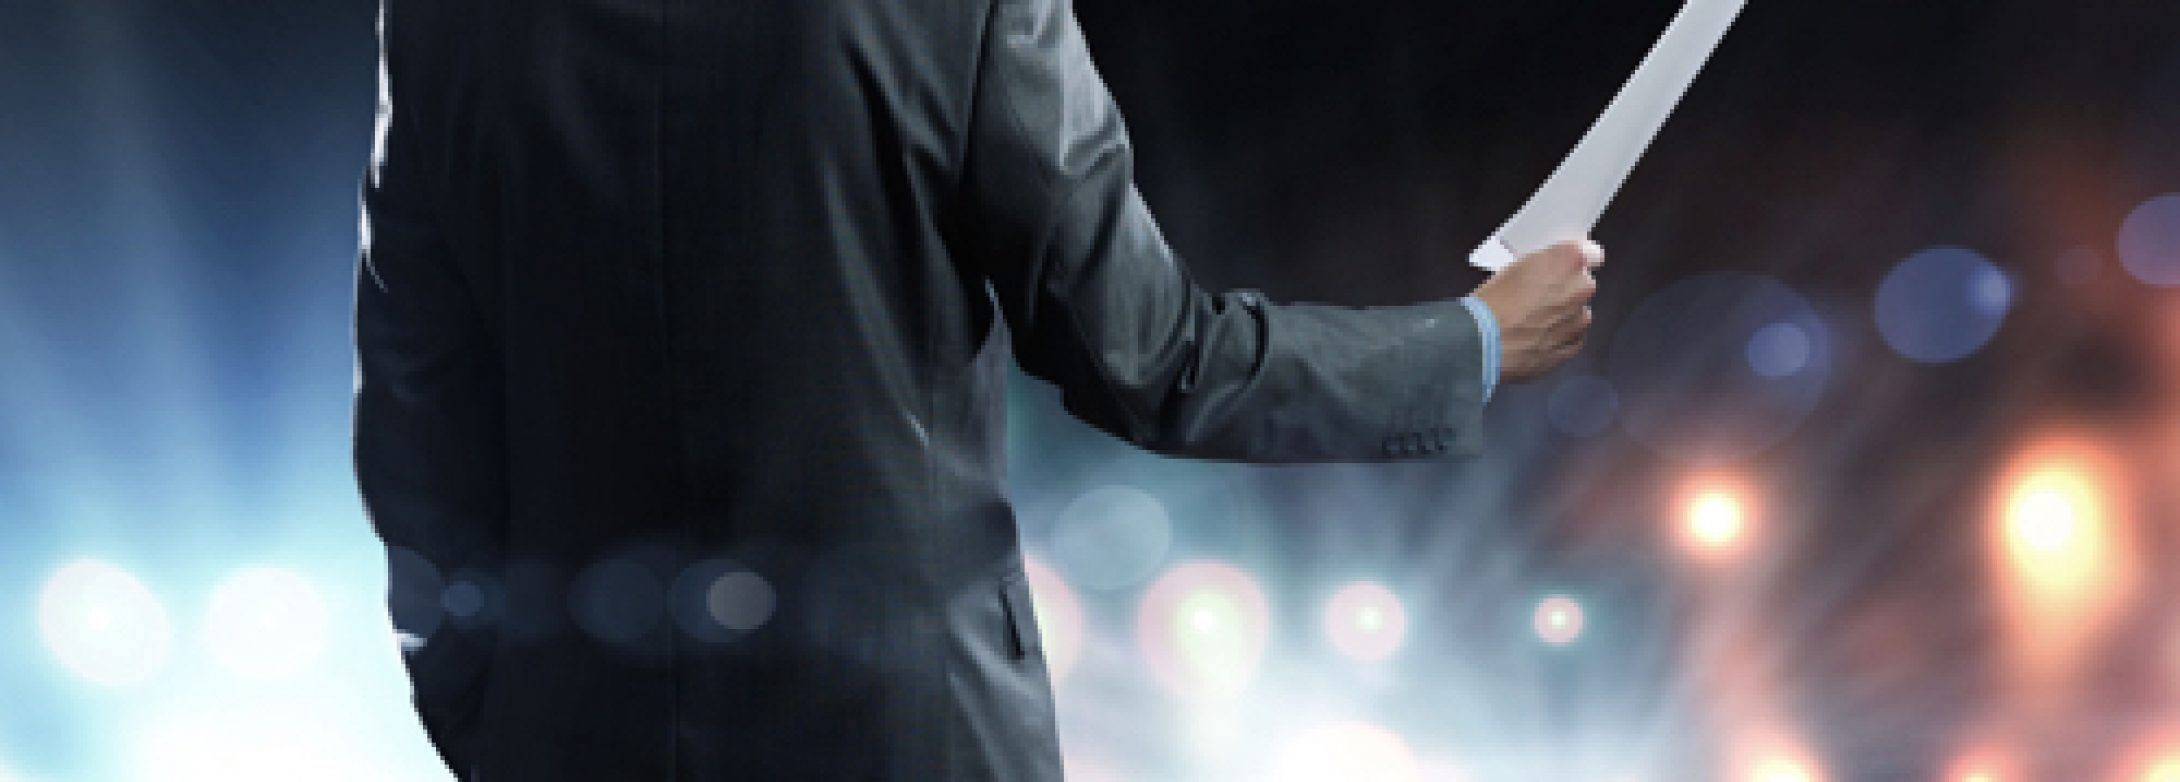 Tips For A Successful Speaking Engagement